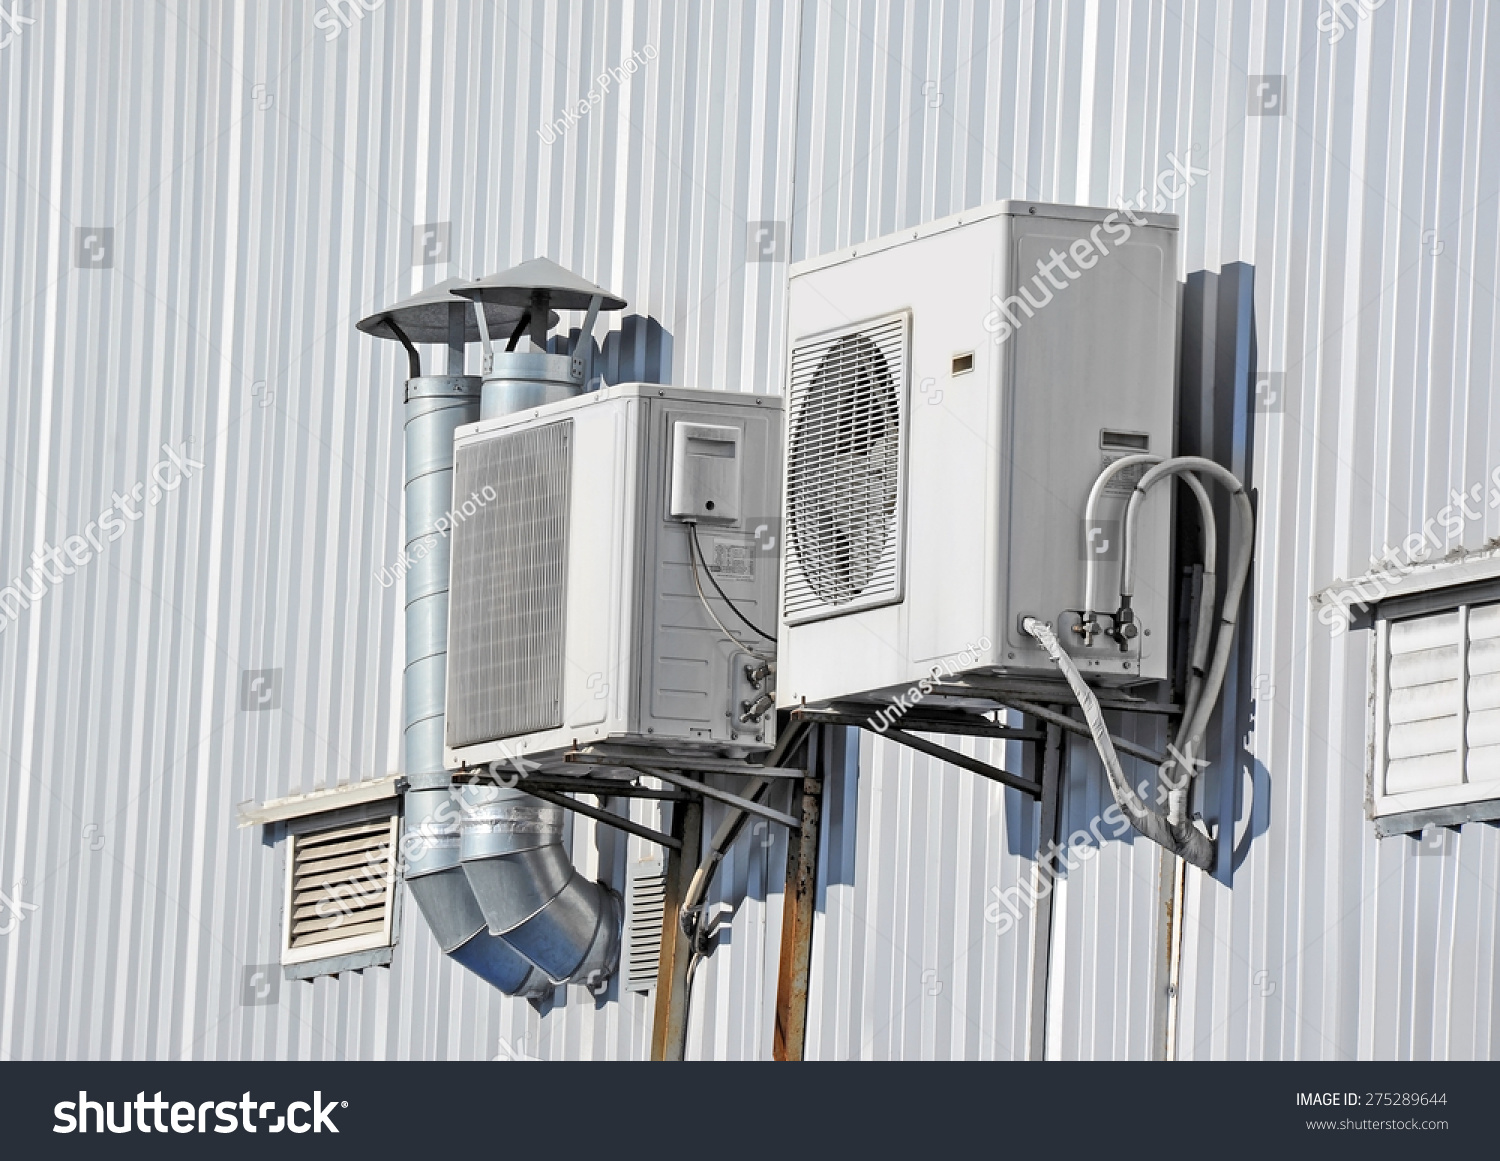 Industrial Air Conditioning And Ventilation Systems On A Wall Stock  #7C6247